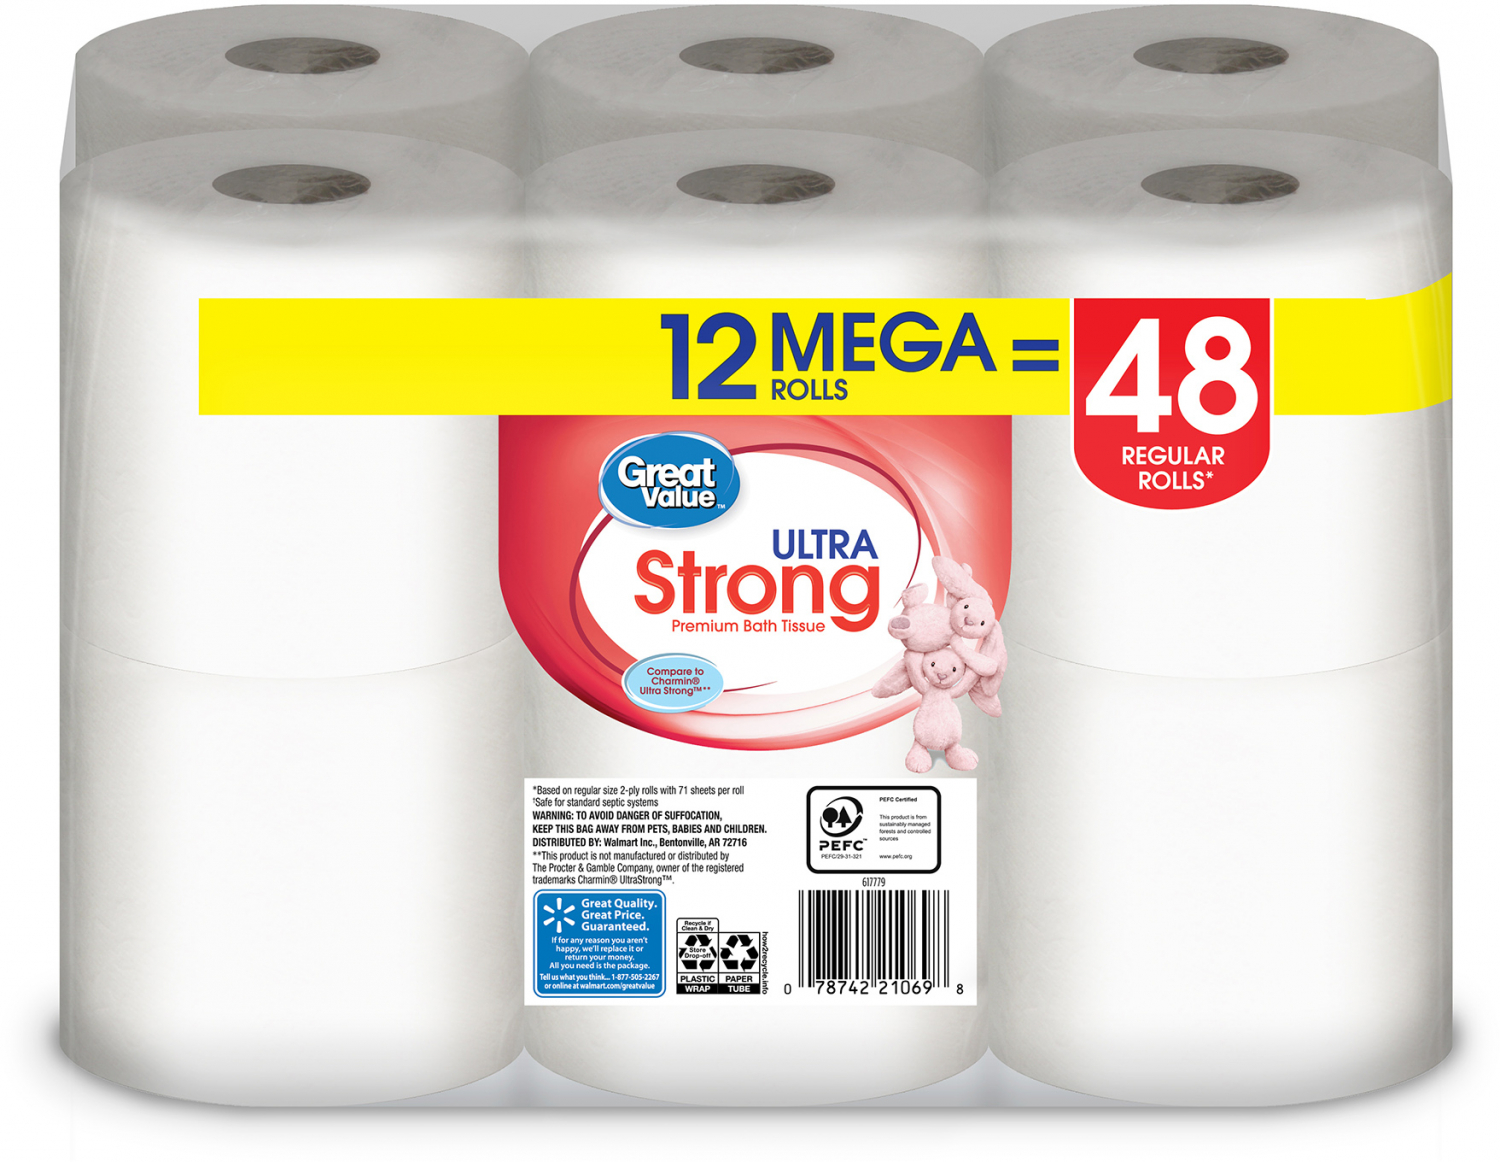 24-Mega-Rolls-Toilet-Paper-Ultra-Strong-2-Ply-Soft-Bath-Tissue-Save-Great-Value thumbnail 14